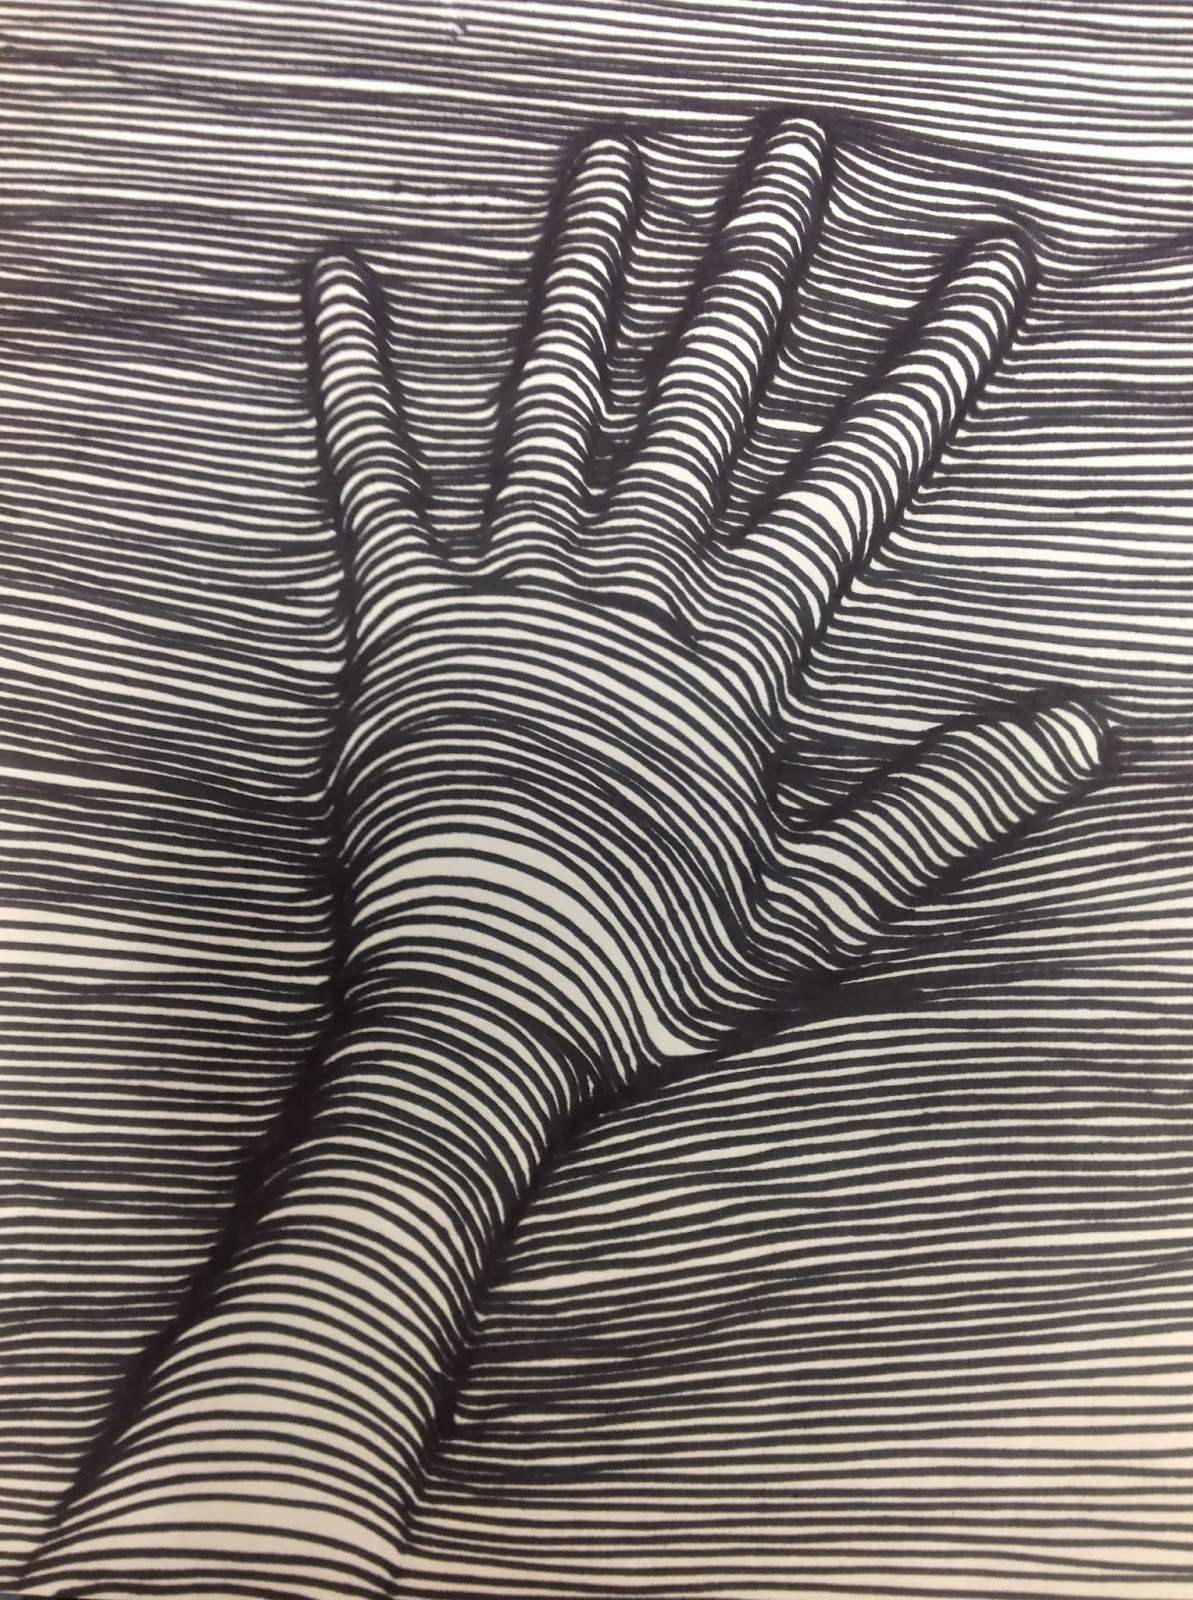 The Line Artwork : Miss arty pants contour line drawings